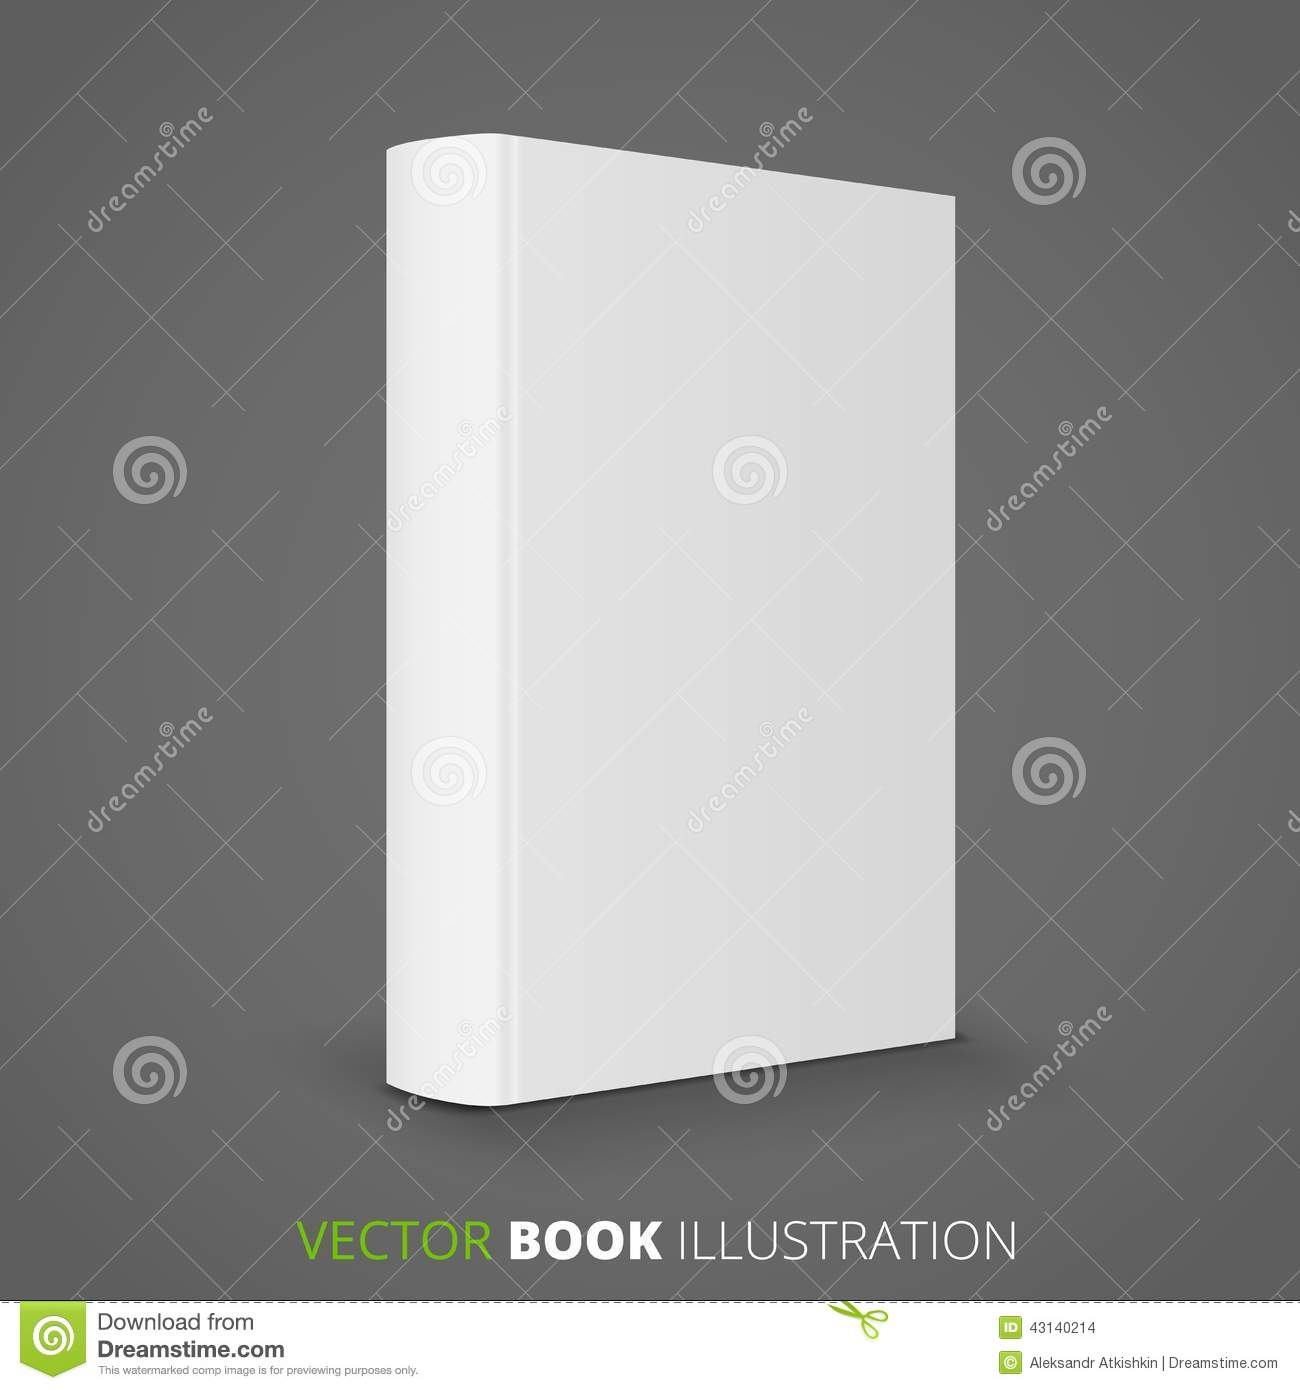 Blank Book Cover Vector Illustration Free : Blank book stock vector image of reading commercial